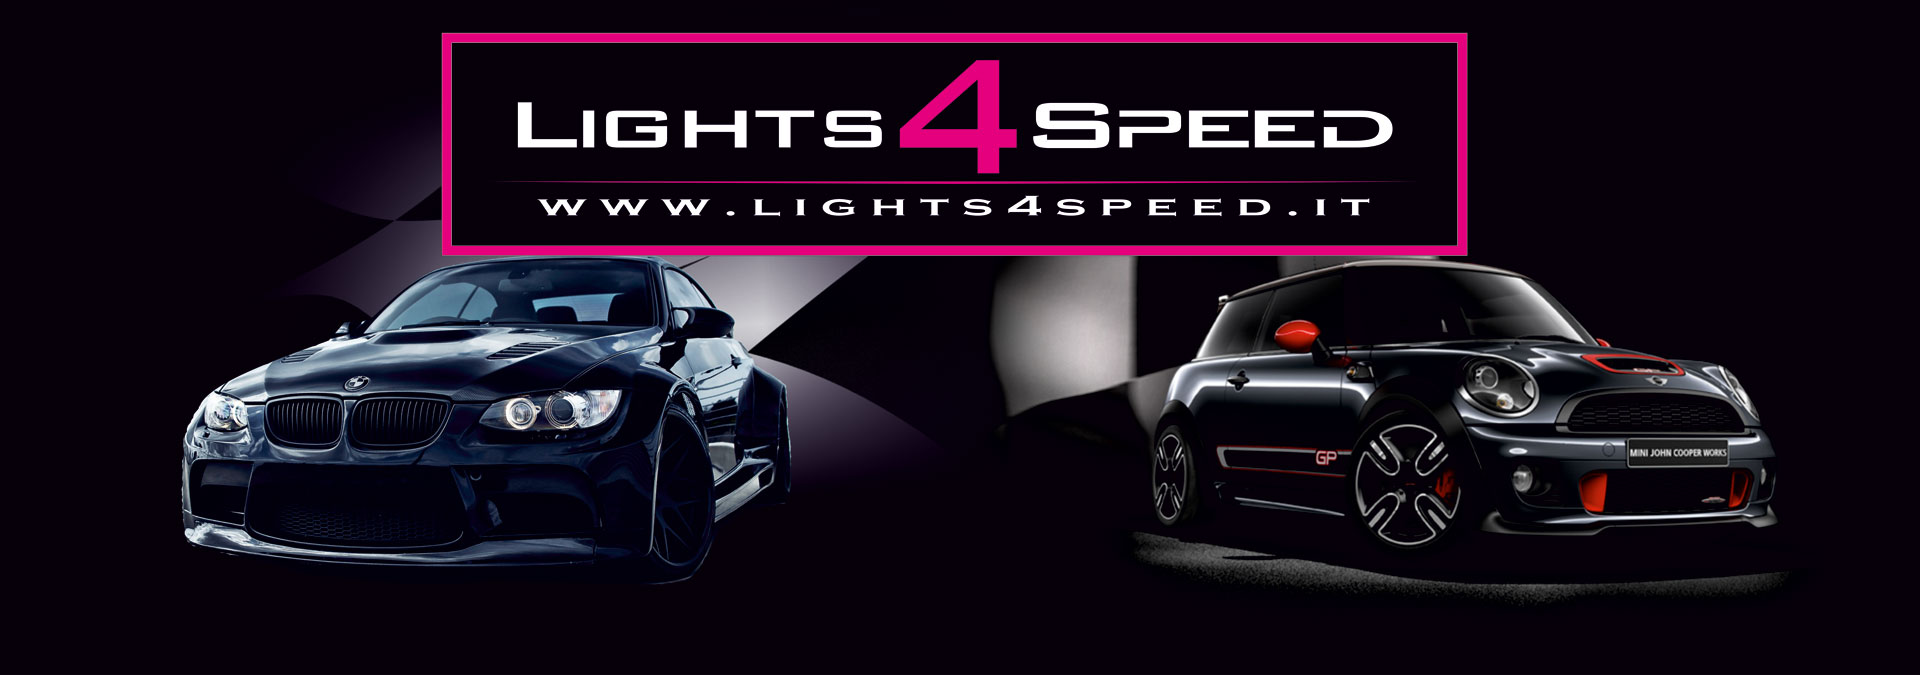 Lights 4 Speed